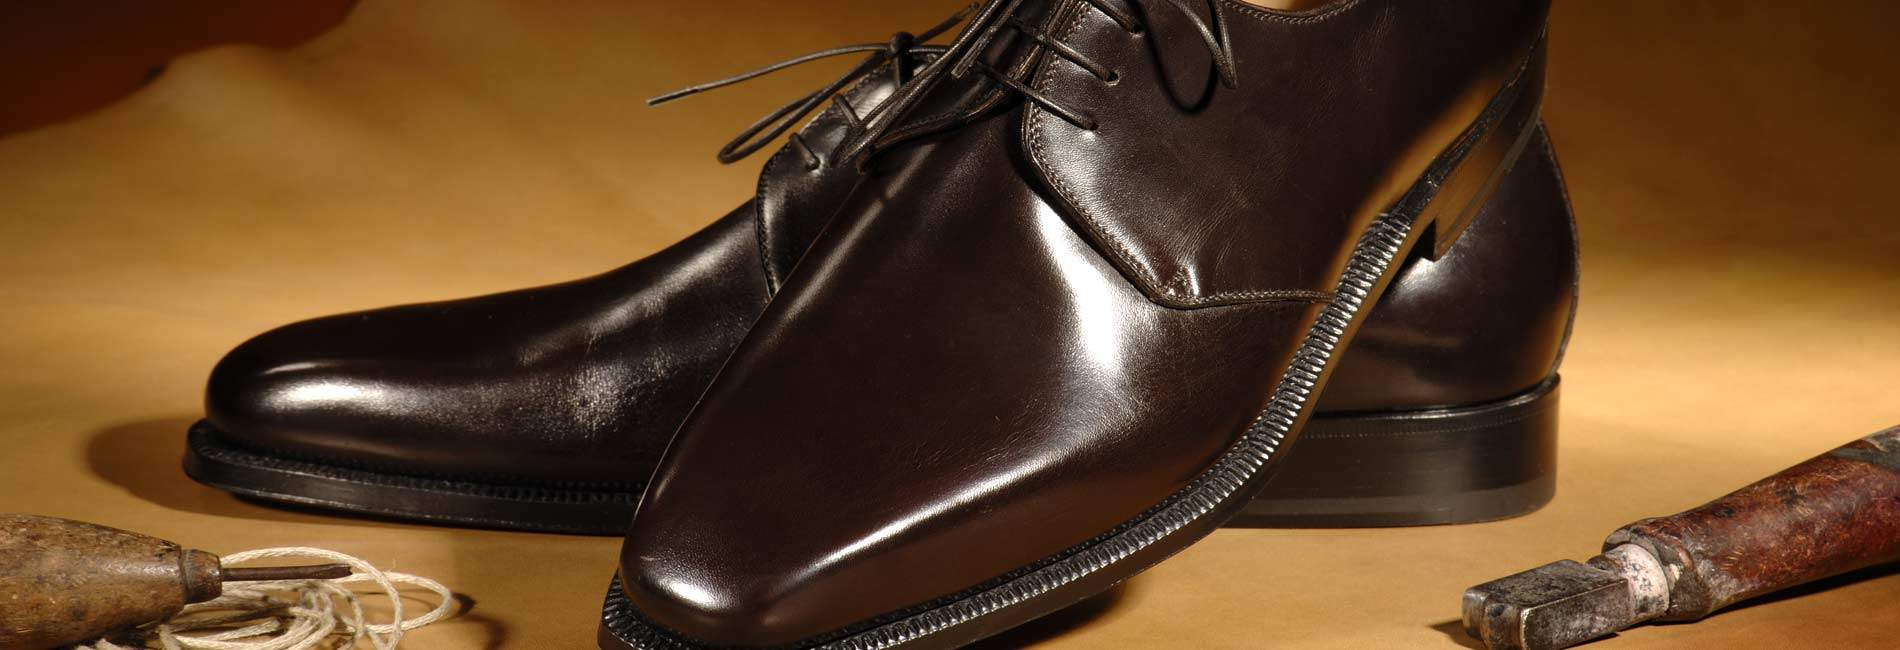 Our shoes for your elegance